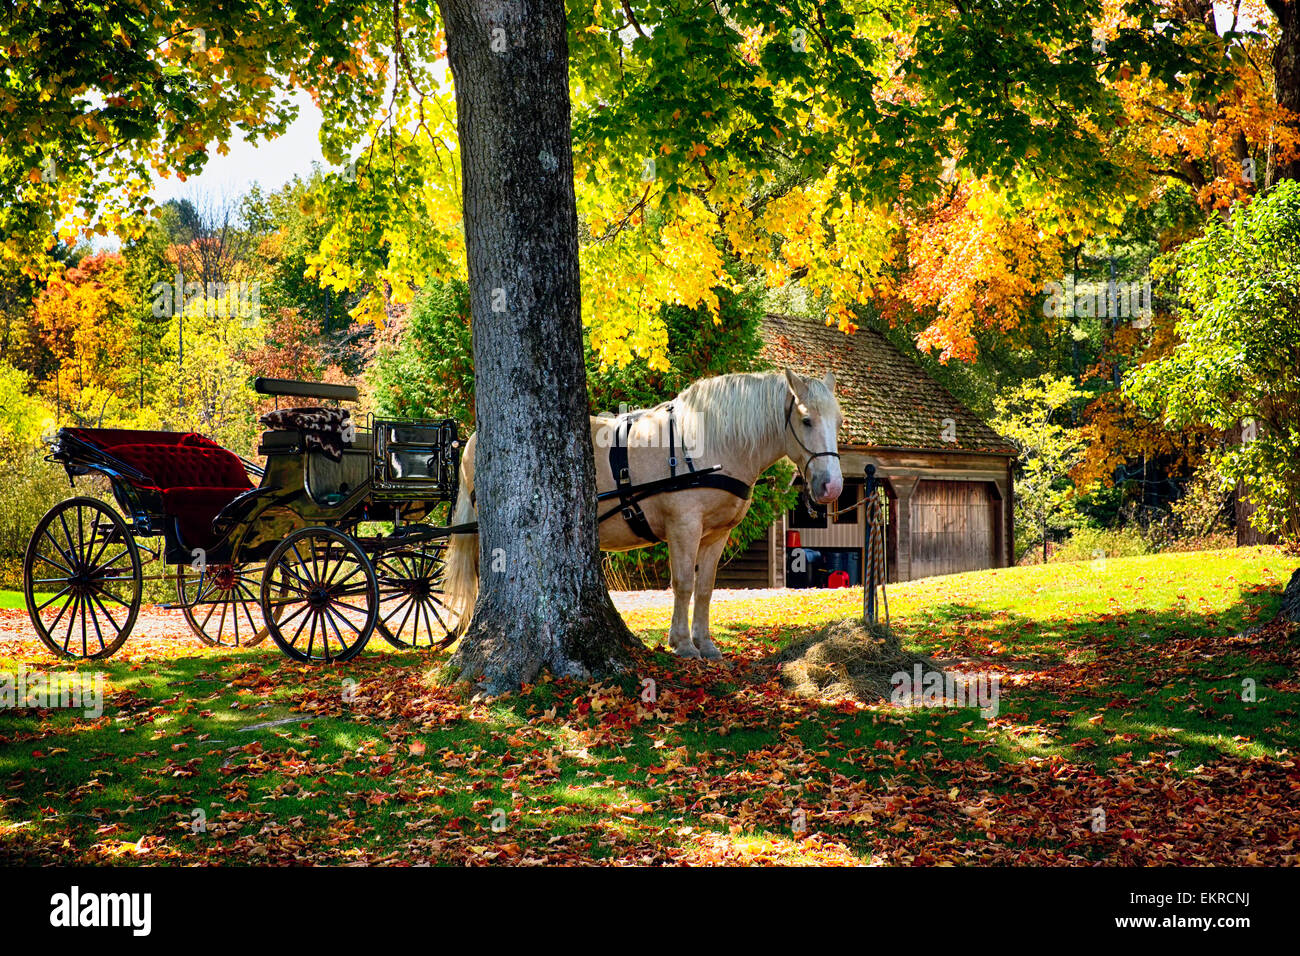 Low Angle View of a Horse-Drawn Carriage Under a Tree During a Fall Afternoon, Bennington, Vermont - Stock Image